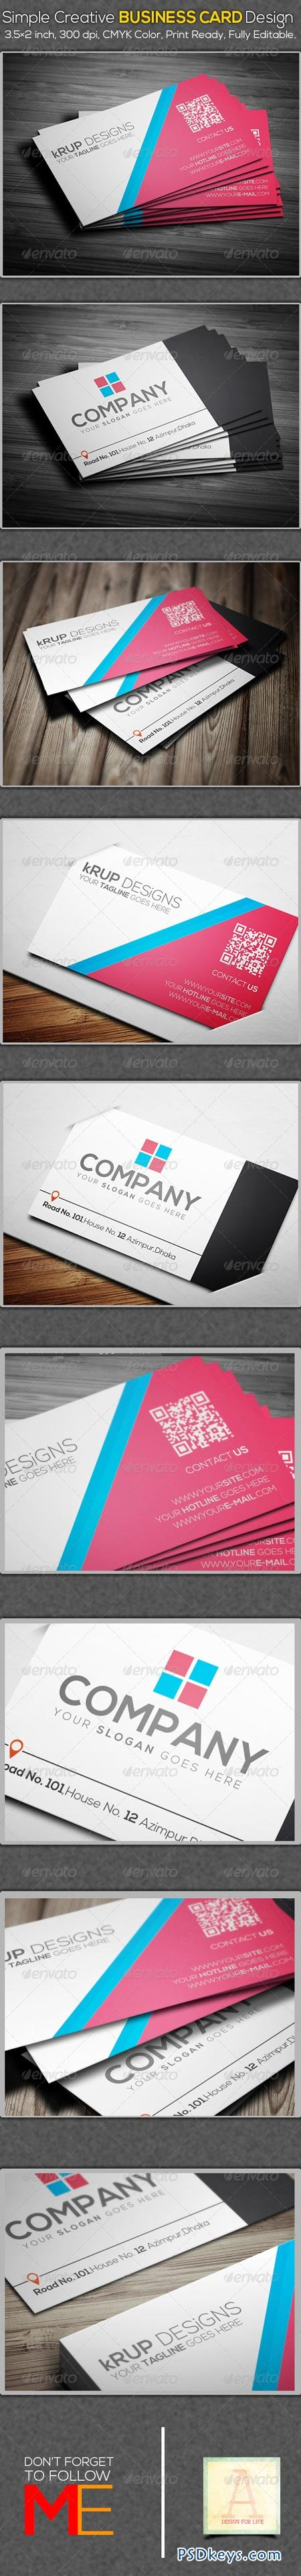 Simple Creative Business Card Design 6925320